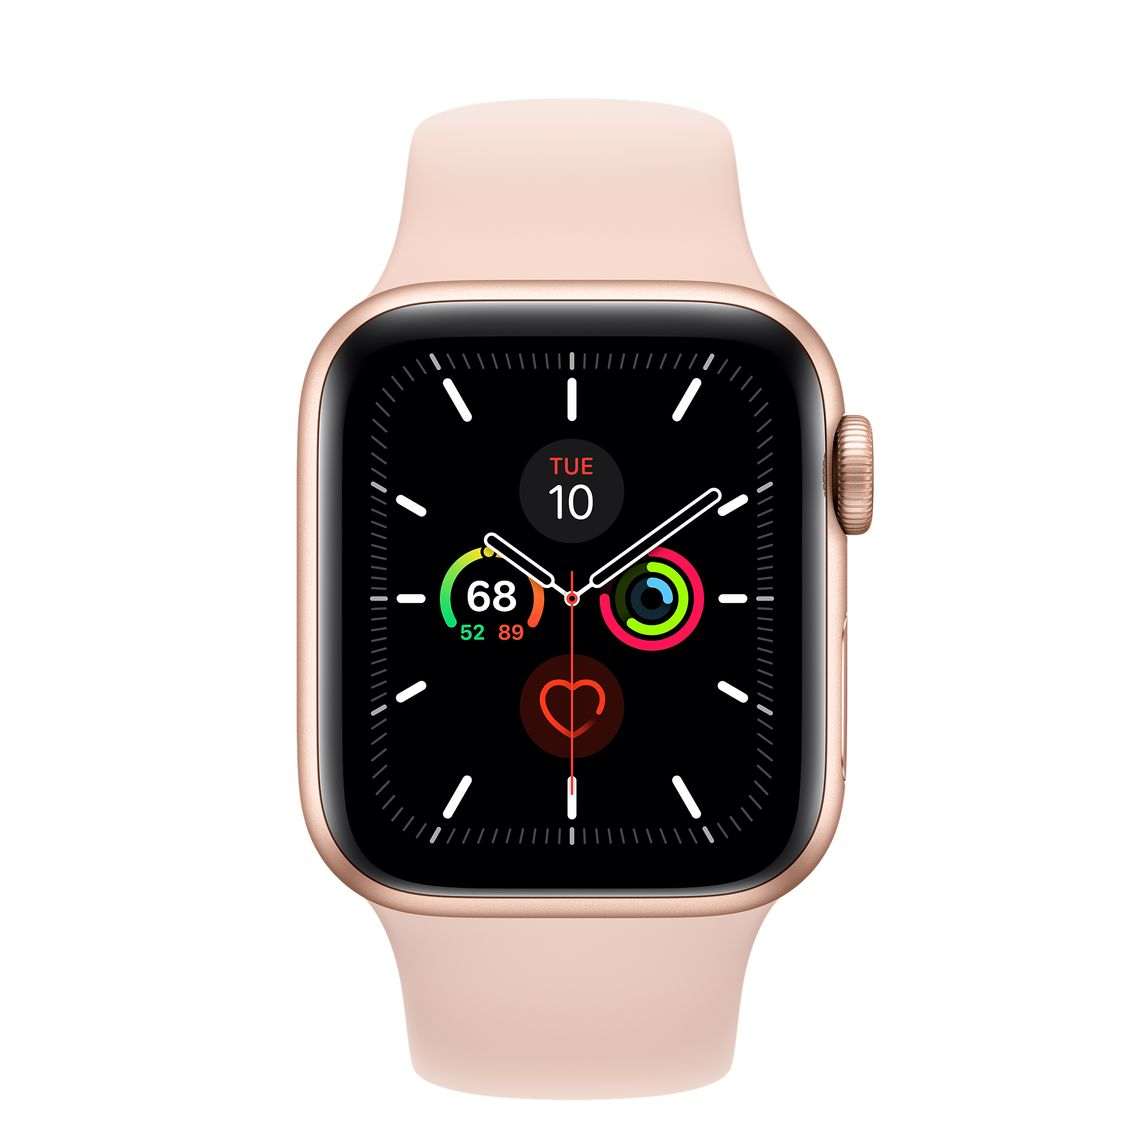 Refurbished Apple Watch Series 5 Gps Cellular 40mm Gold Aluminum Case With Pink Sand Sport Band Apple